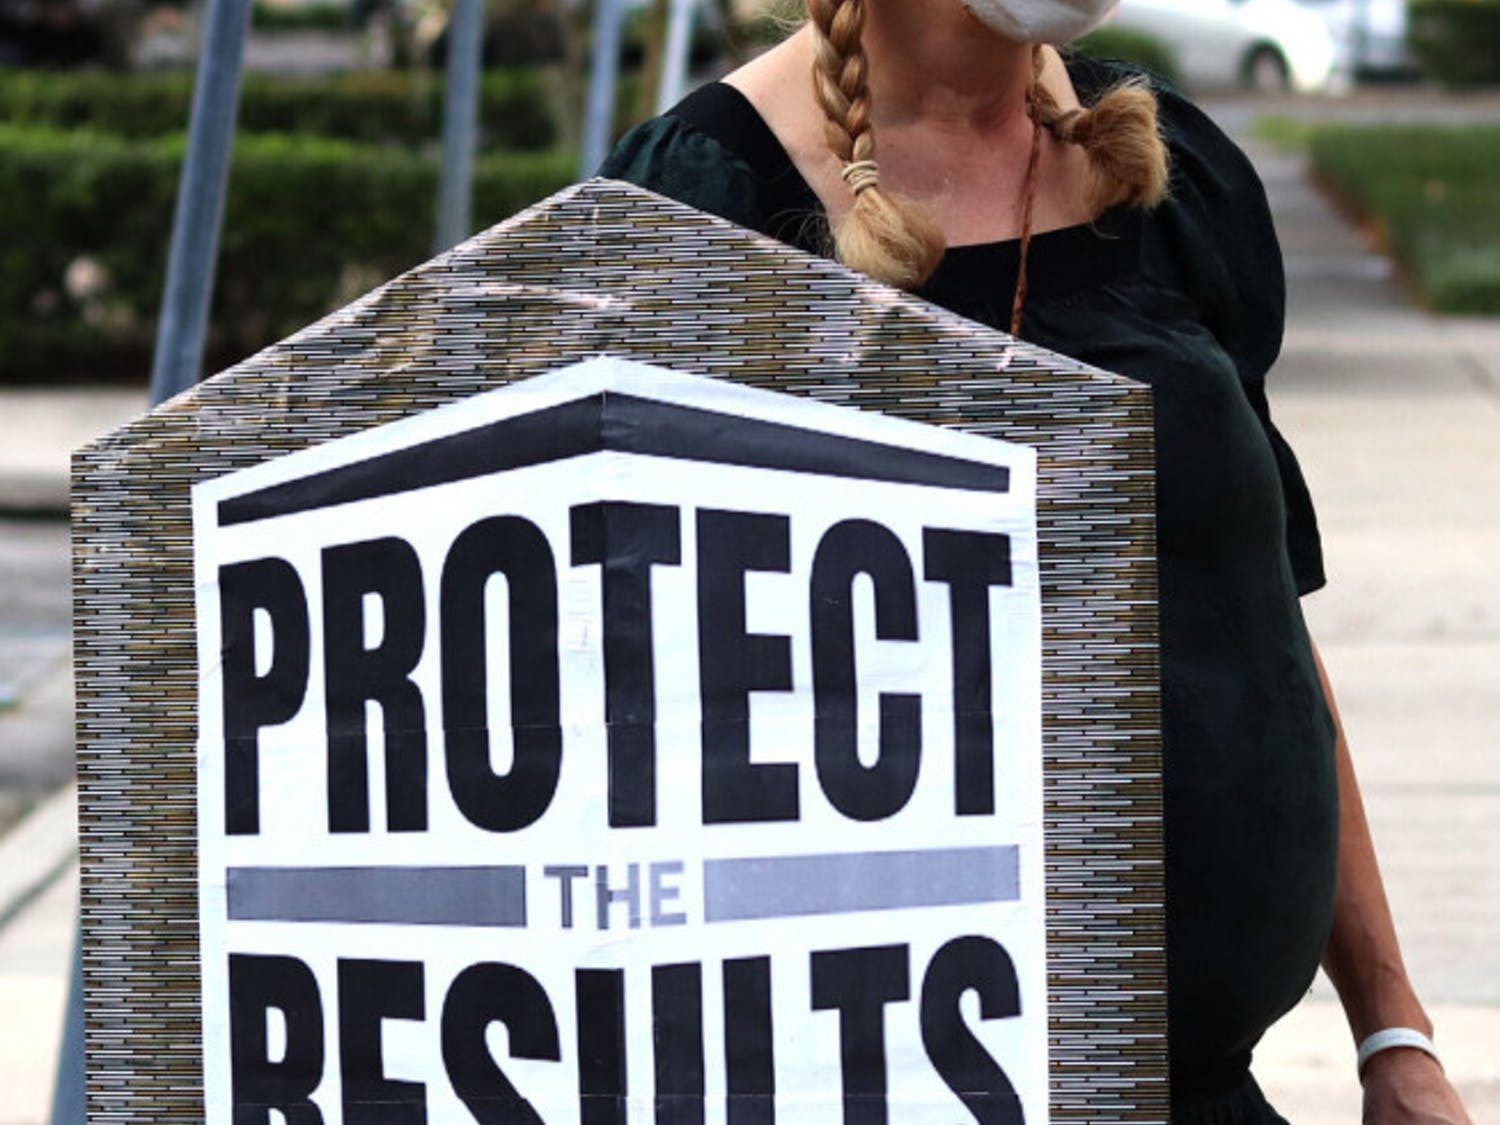 """Sarah Younger holds a shield stating """"Protect the Results"""" during the rally held at the Alachua City Hall on Wednesday, Nov. 4, 2020. Younger said, """"It ain't over 'til the fat lady sings, and I'm not singing yet."""" (Lauren Witte/Alligator Staff)"""